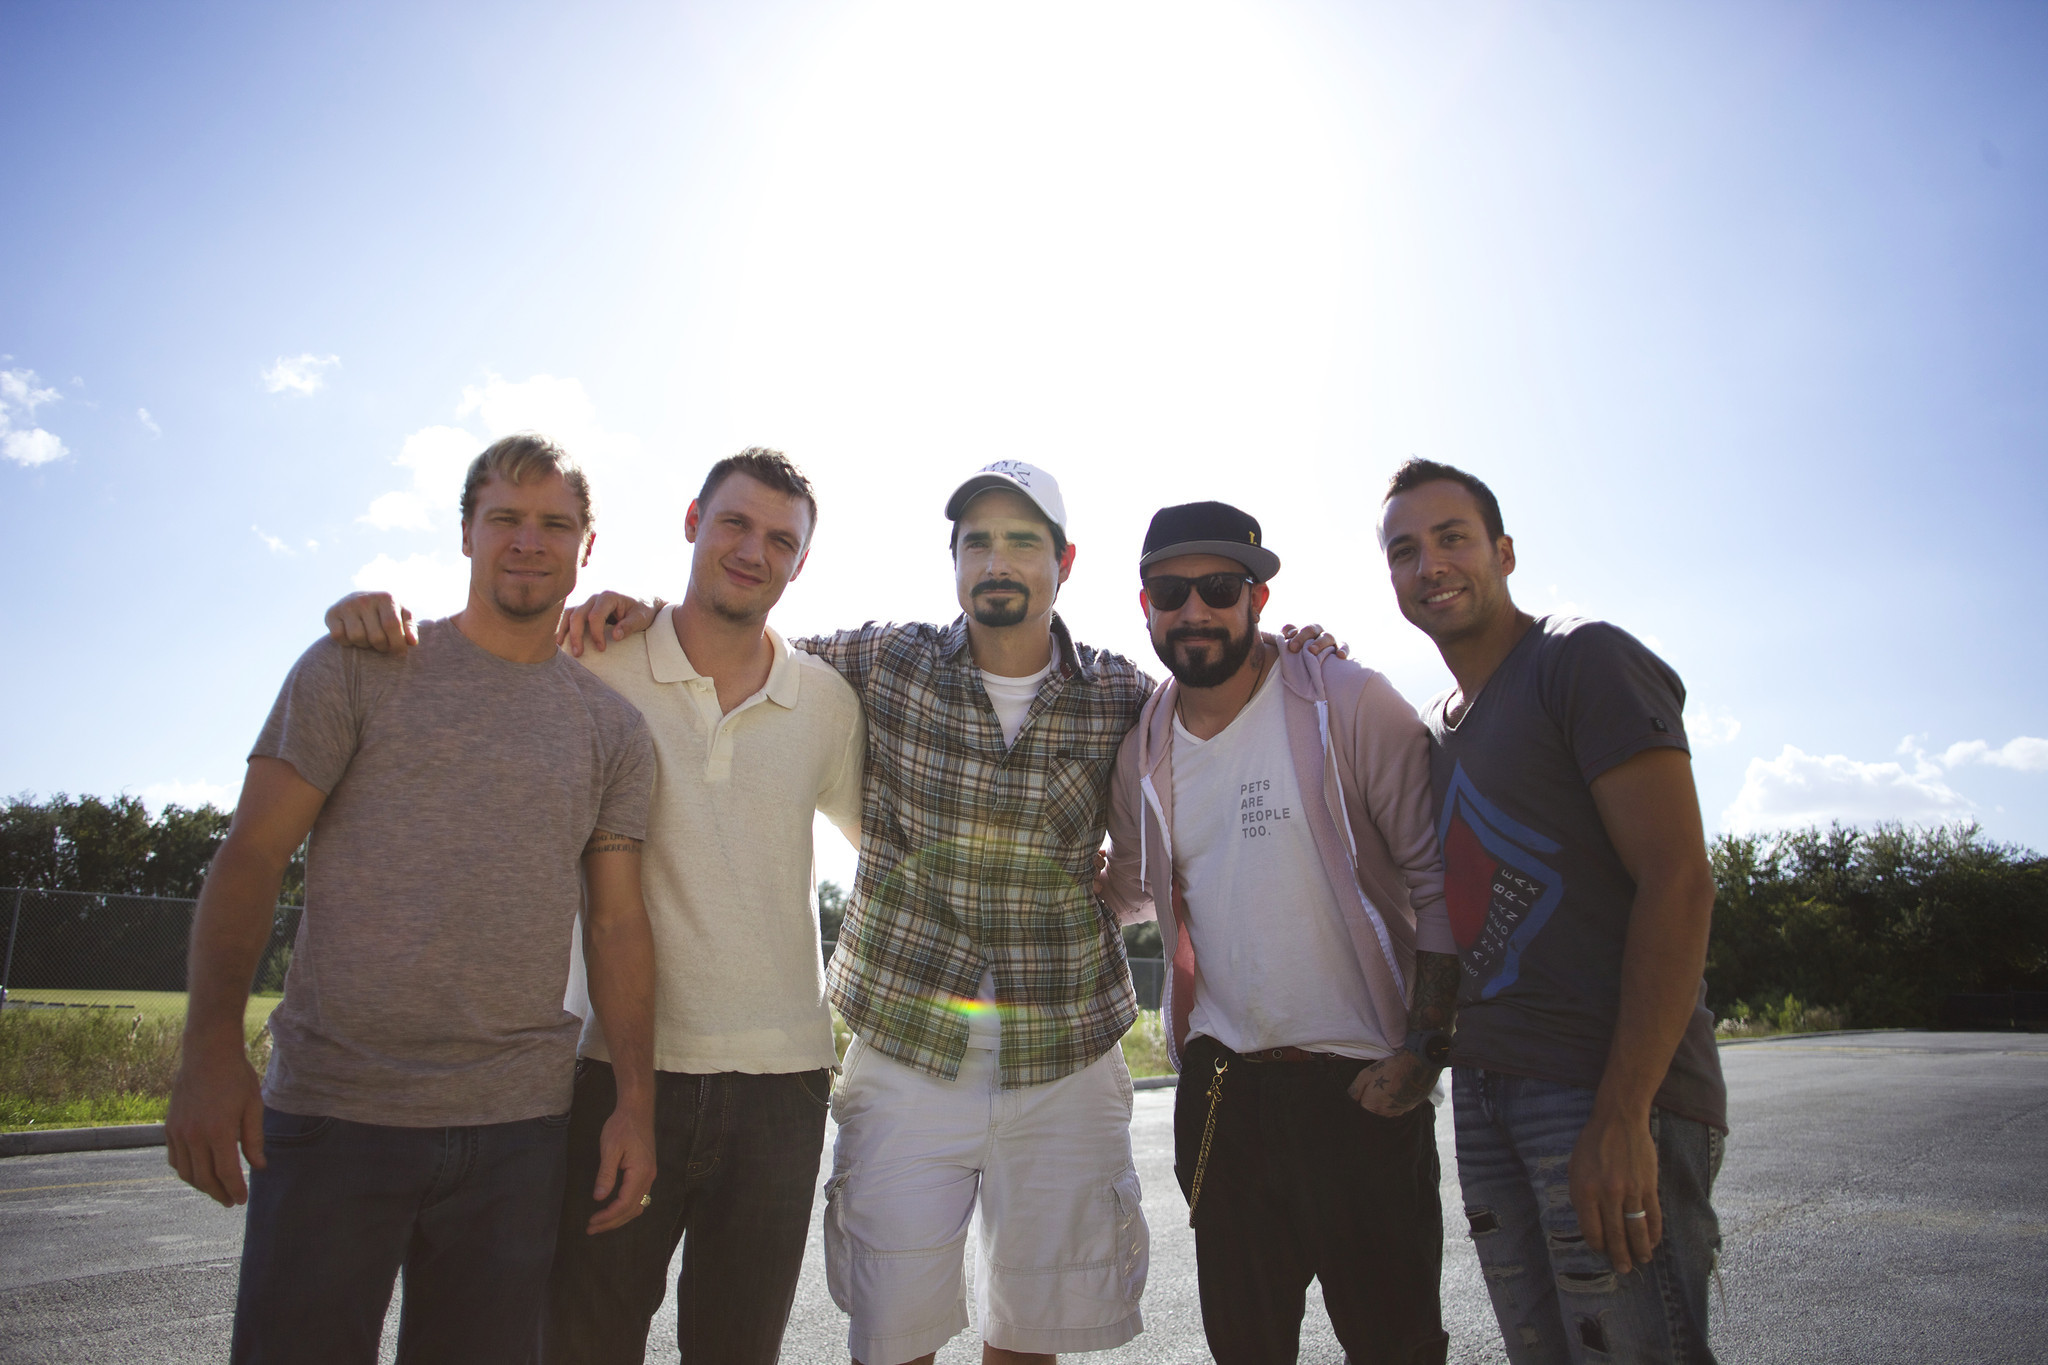 'Backstreet Boys' touts band's resilience, has little insight